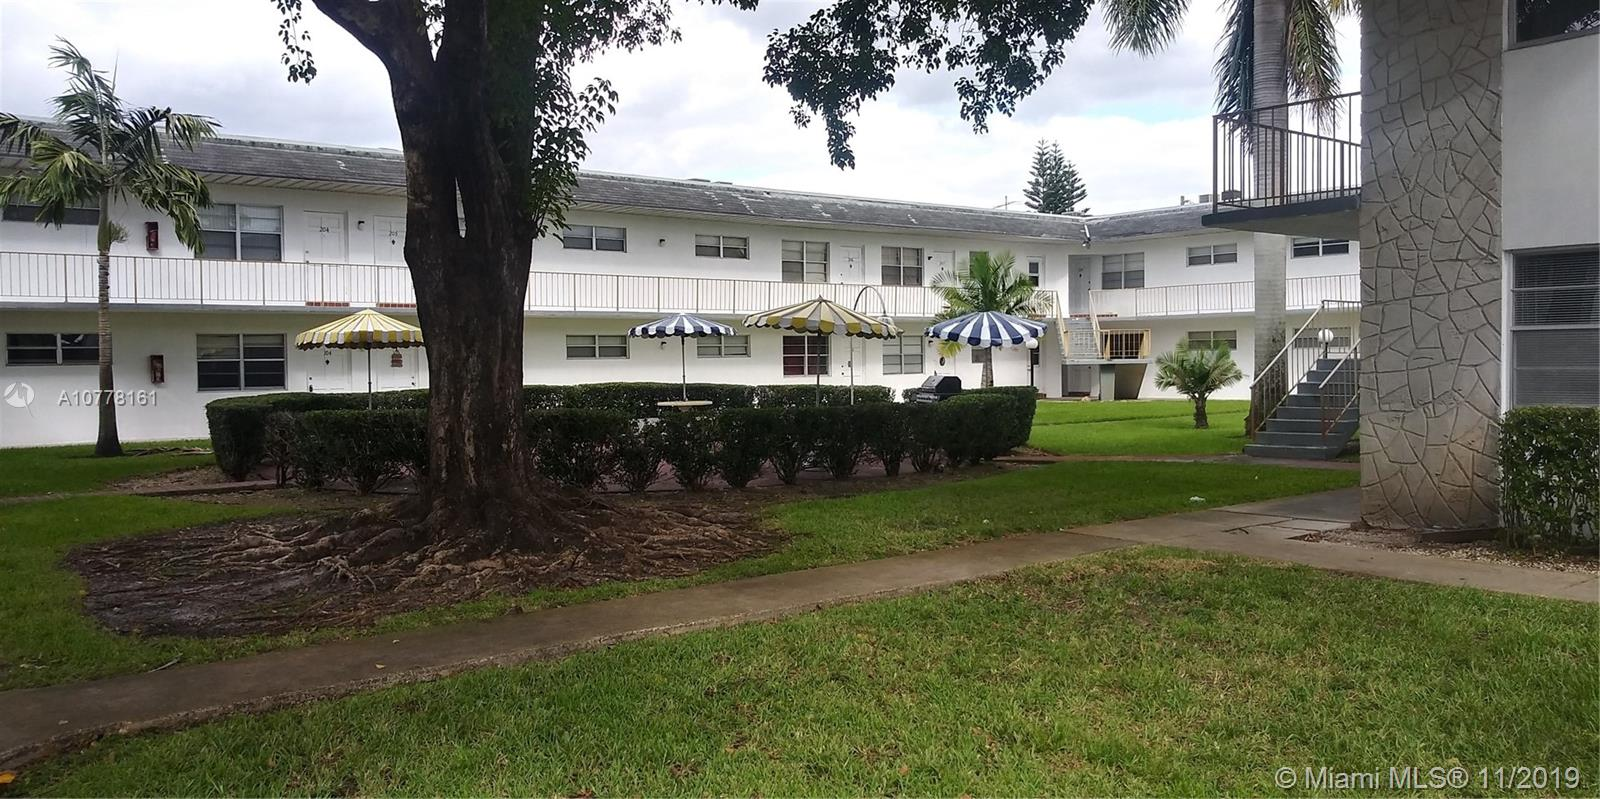 6191 SW 37th St #115 For Sale A10778161, FL